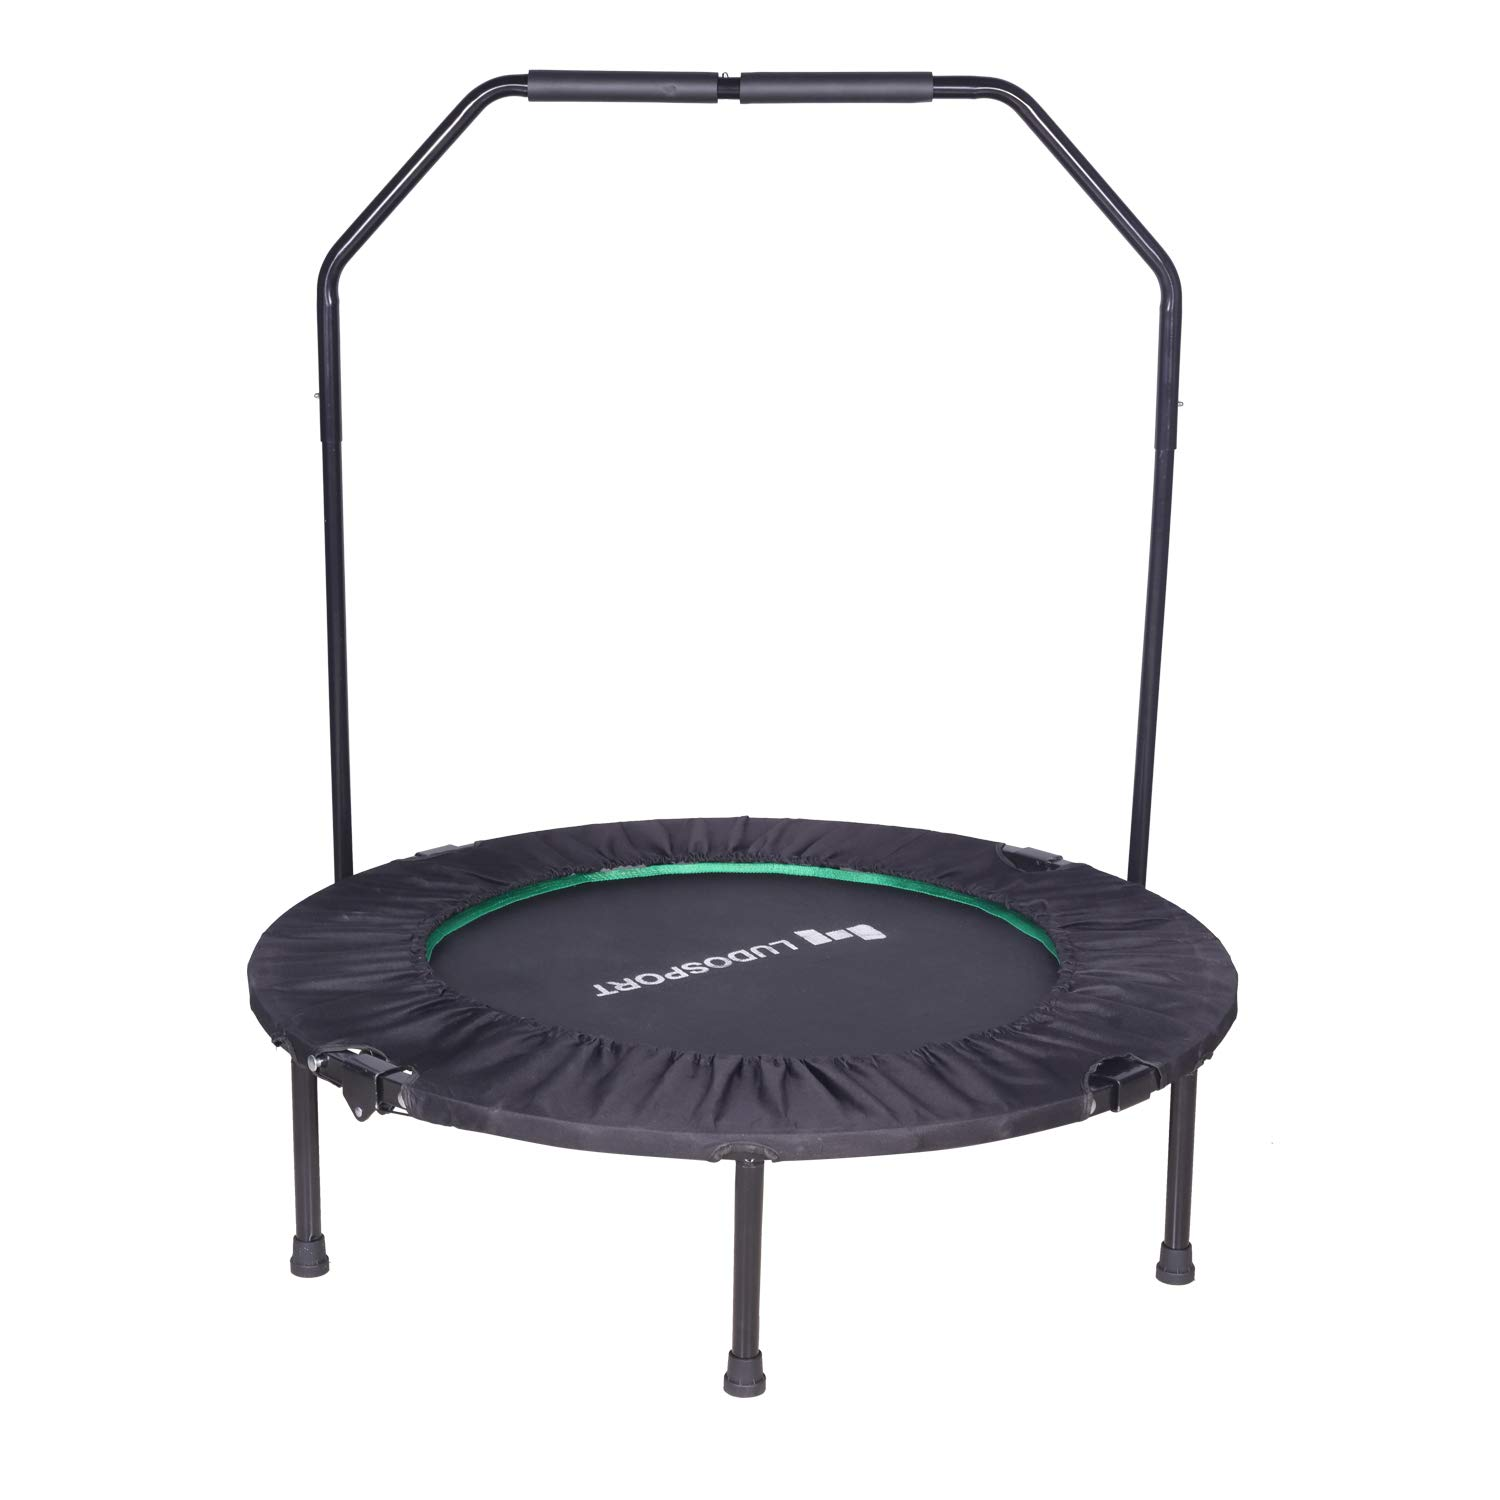 Ludosport Foldable Rebounder 40'' Mini Trampoline Rebounder,Fitness Trampoline Trainer with Handrail, 300lb Max Load Bearing Rebounder Trampoline for Indoor, Outdoor, Yoga and Other Cardio Exercise